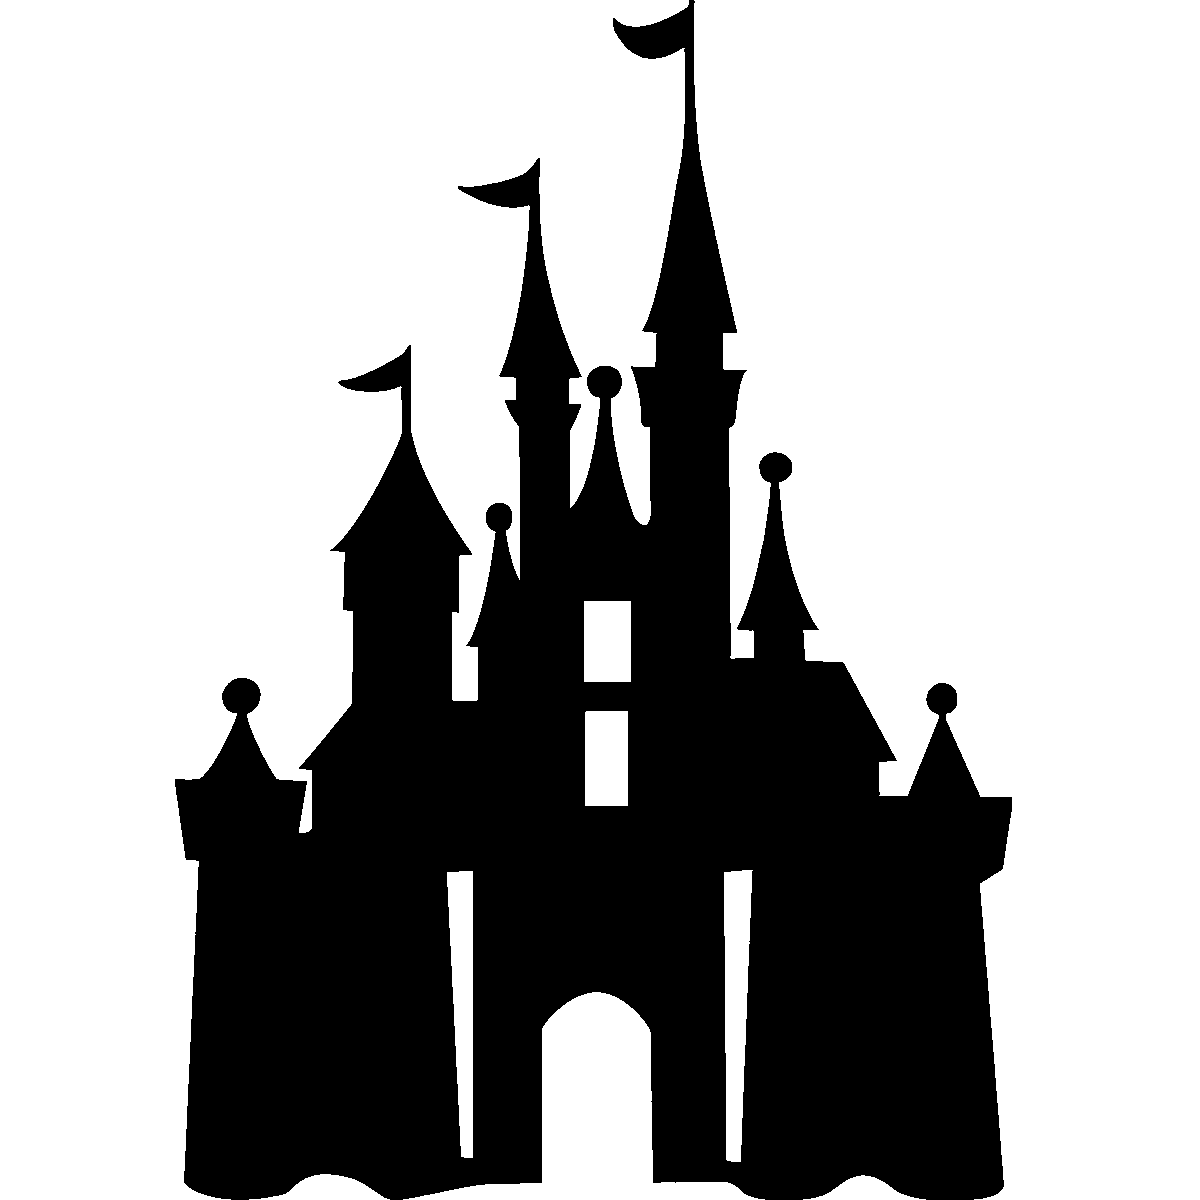 Magic Kingdom Castle Silhouette at GetDrawings.com | Free for ...